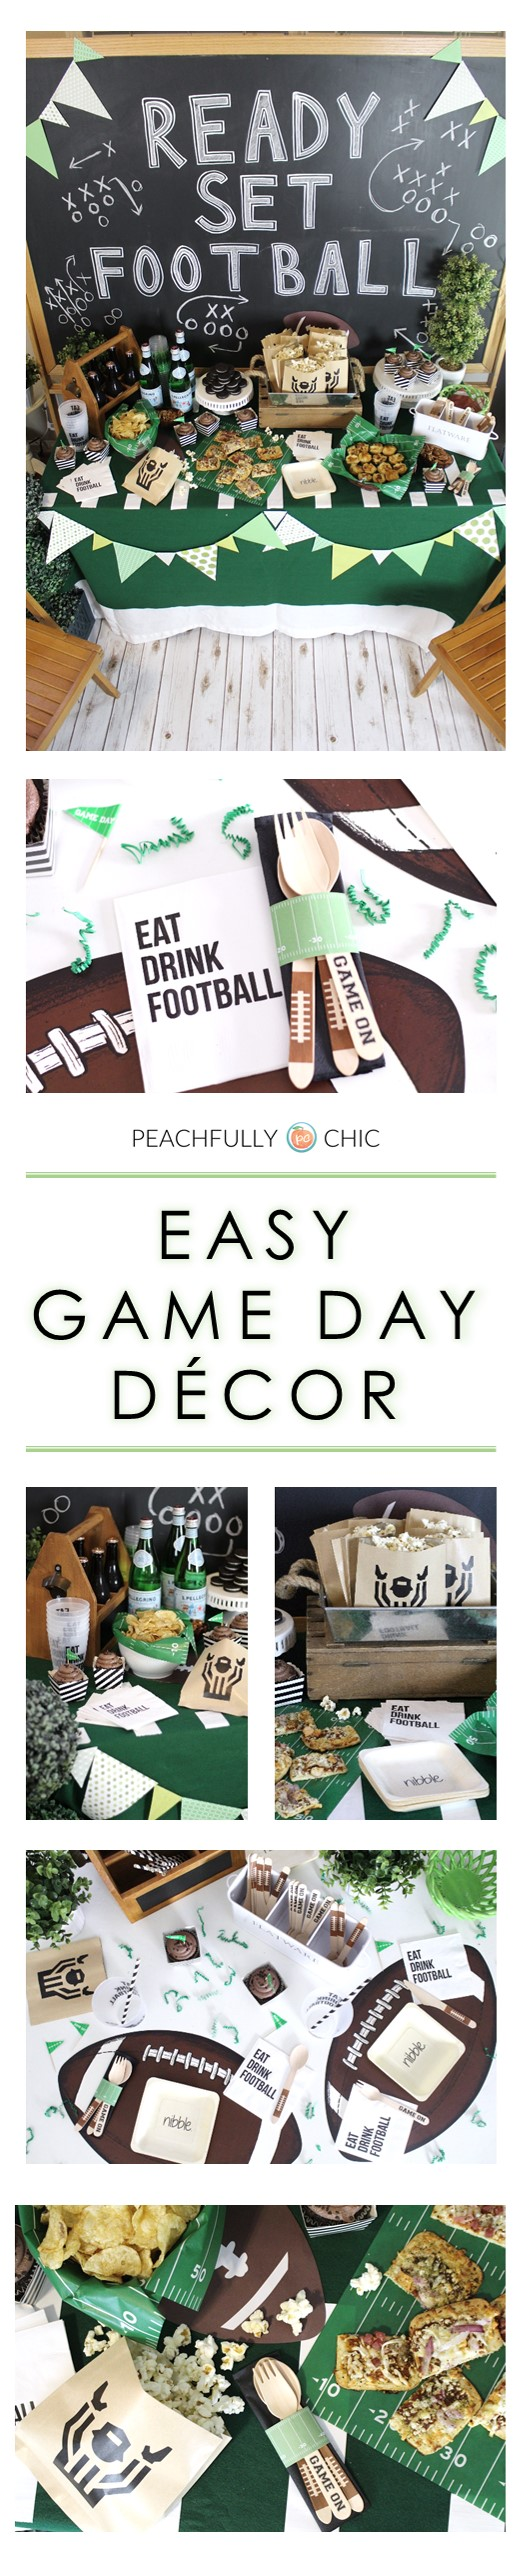 Football-Draft-Party-Tailgate-Decorations-Peachfully-Chic